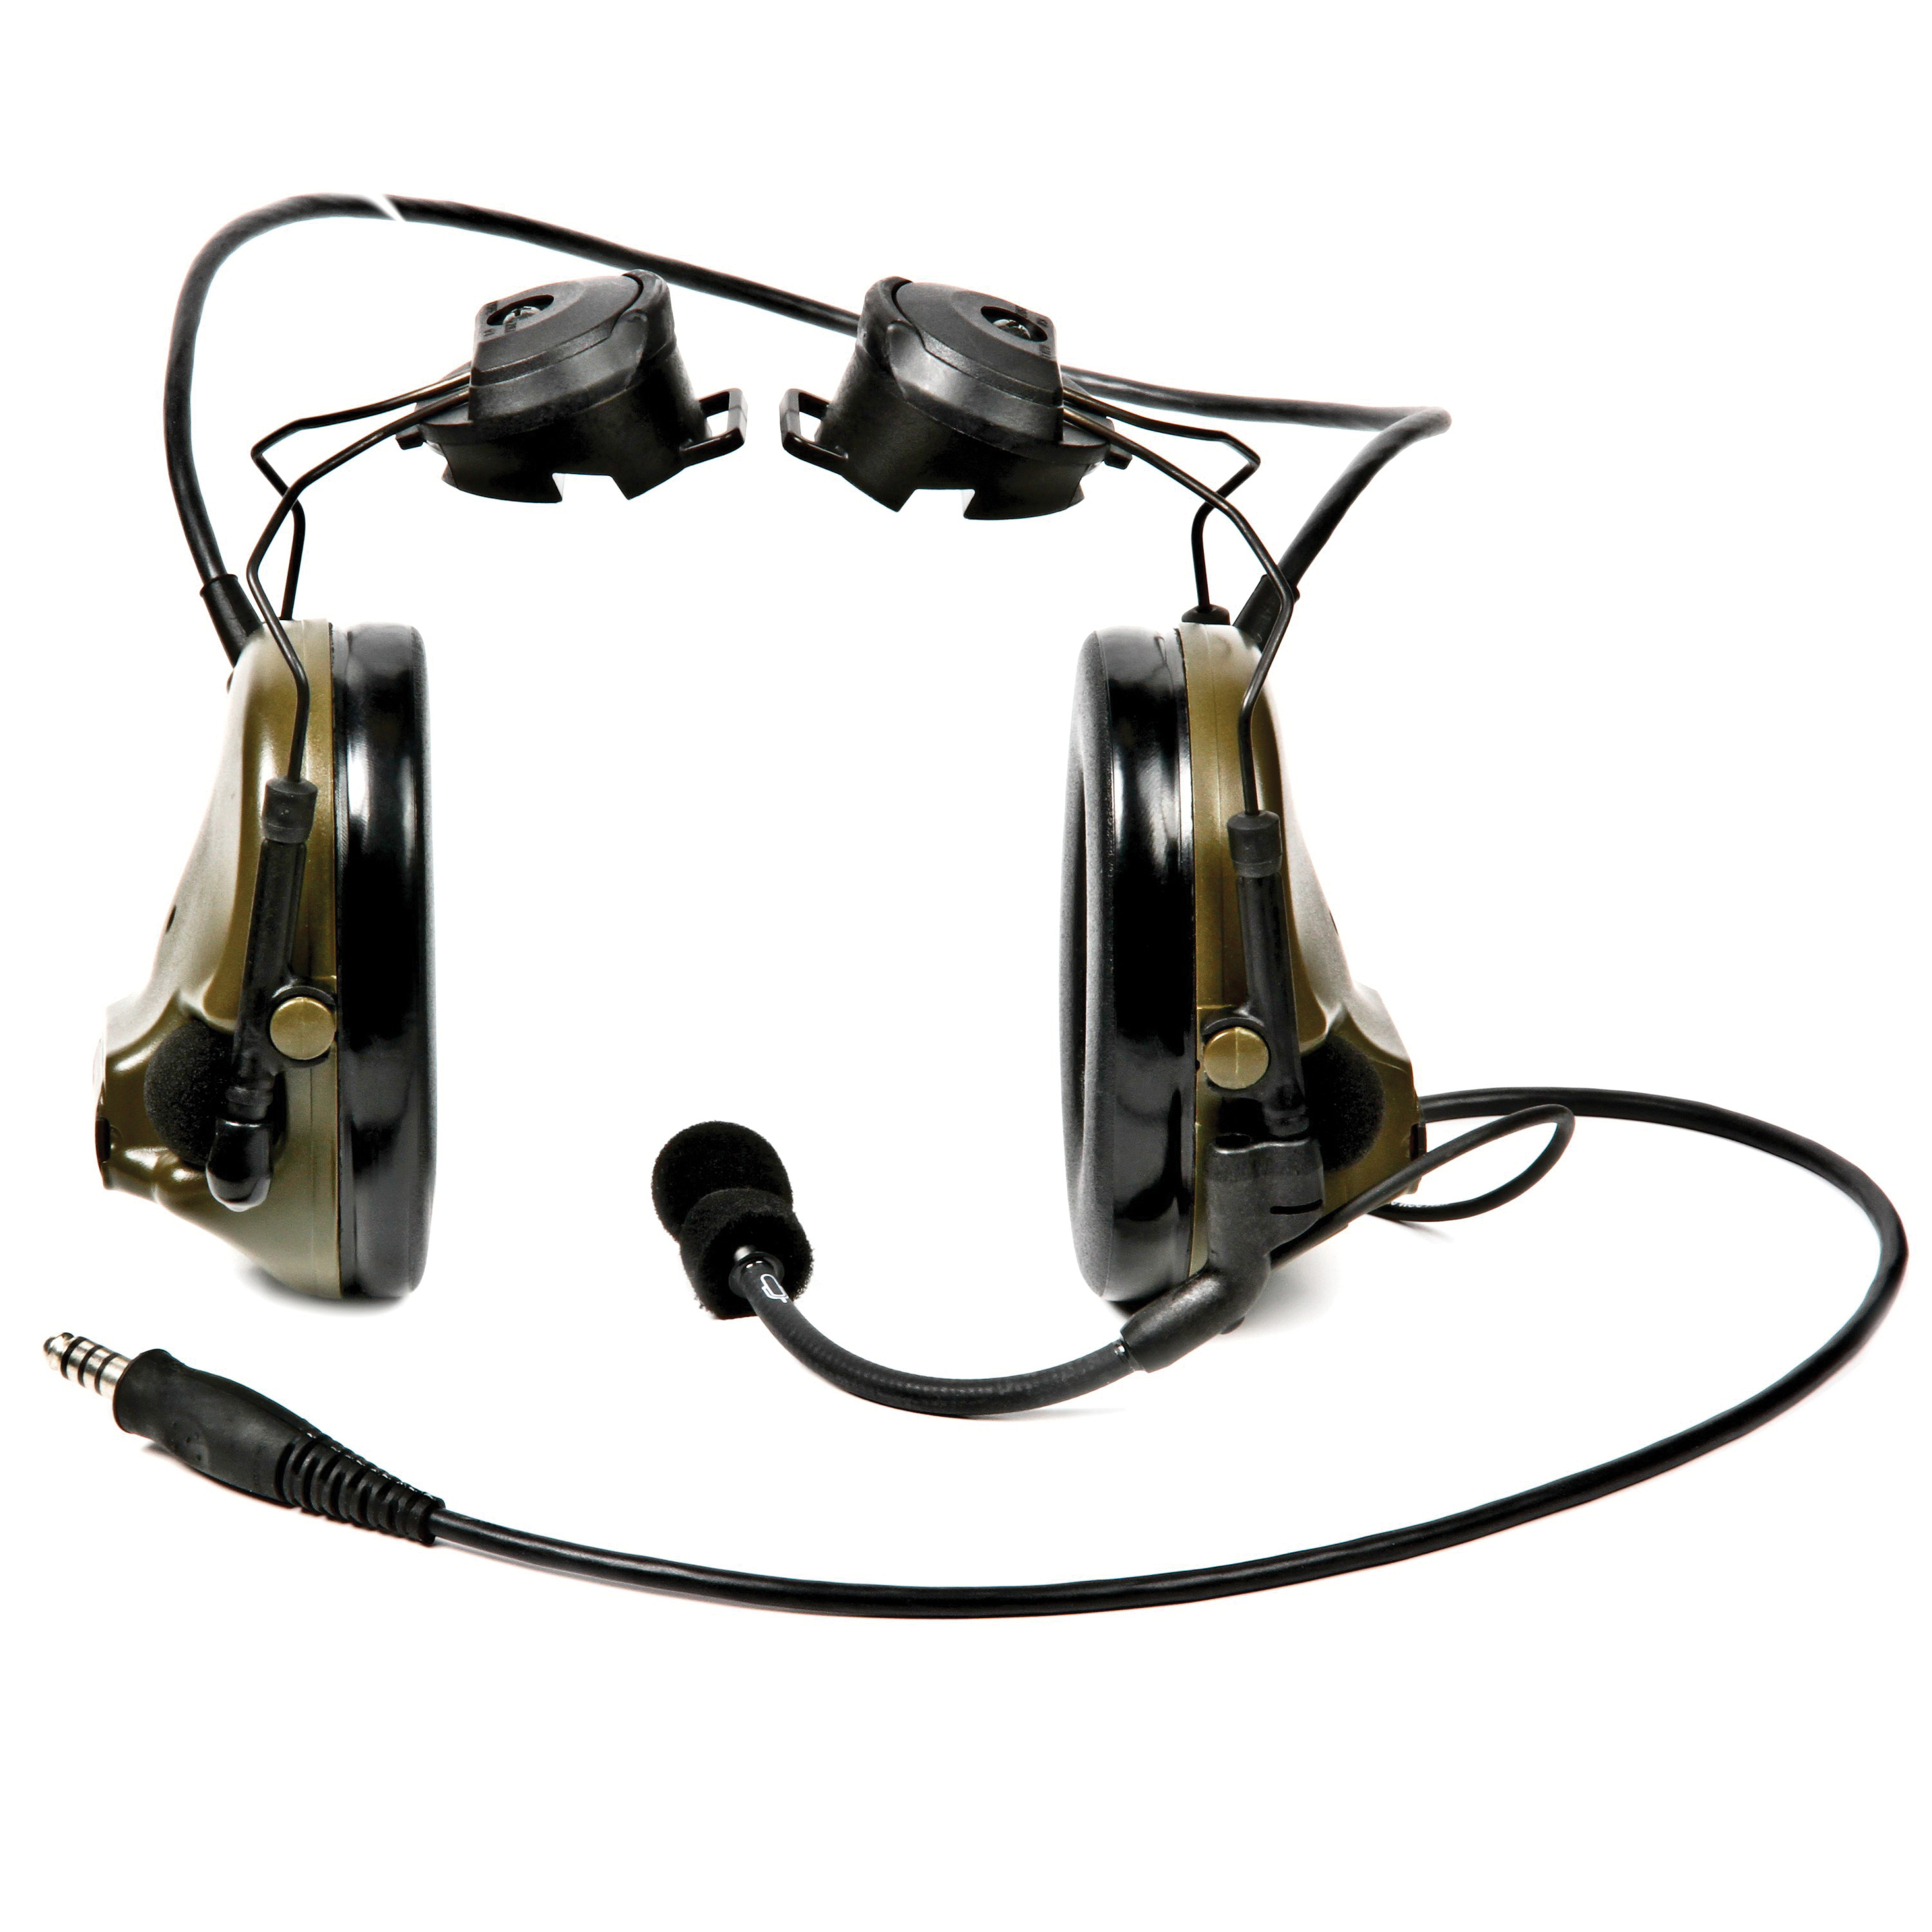 Peltor™ SWAT-TAC™ III 093045-93480 MT Series 2-Way Radio Headset With Dynamic Boom Microphone, 22 dB Noise Reduction, For Use With ACH and MICH Helmet, Helmet Mount, Olive Drab Green/Black